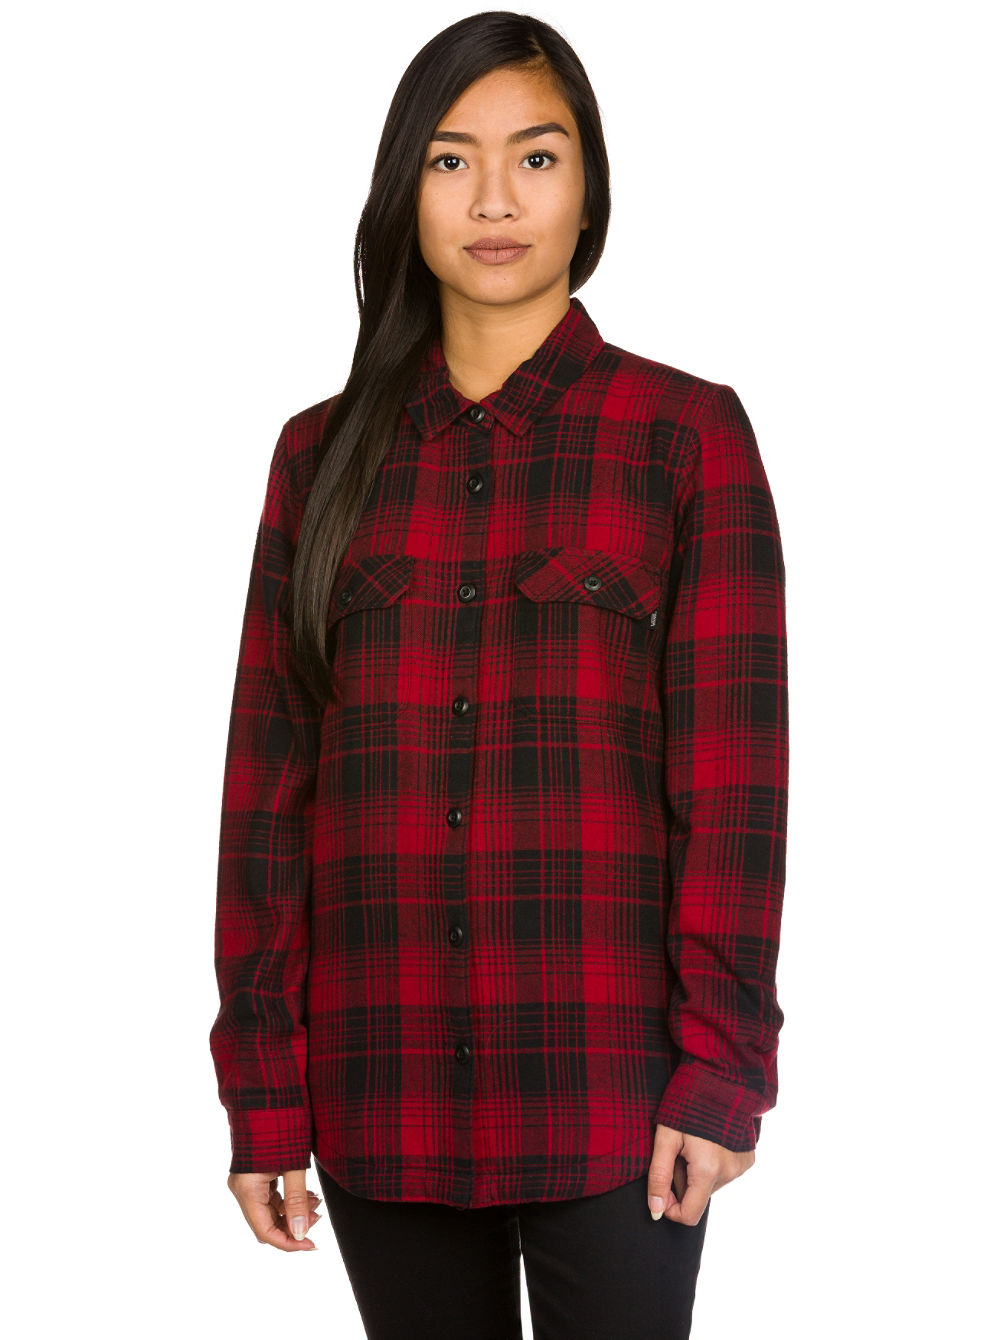 White Owl Flannel Hemd